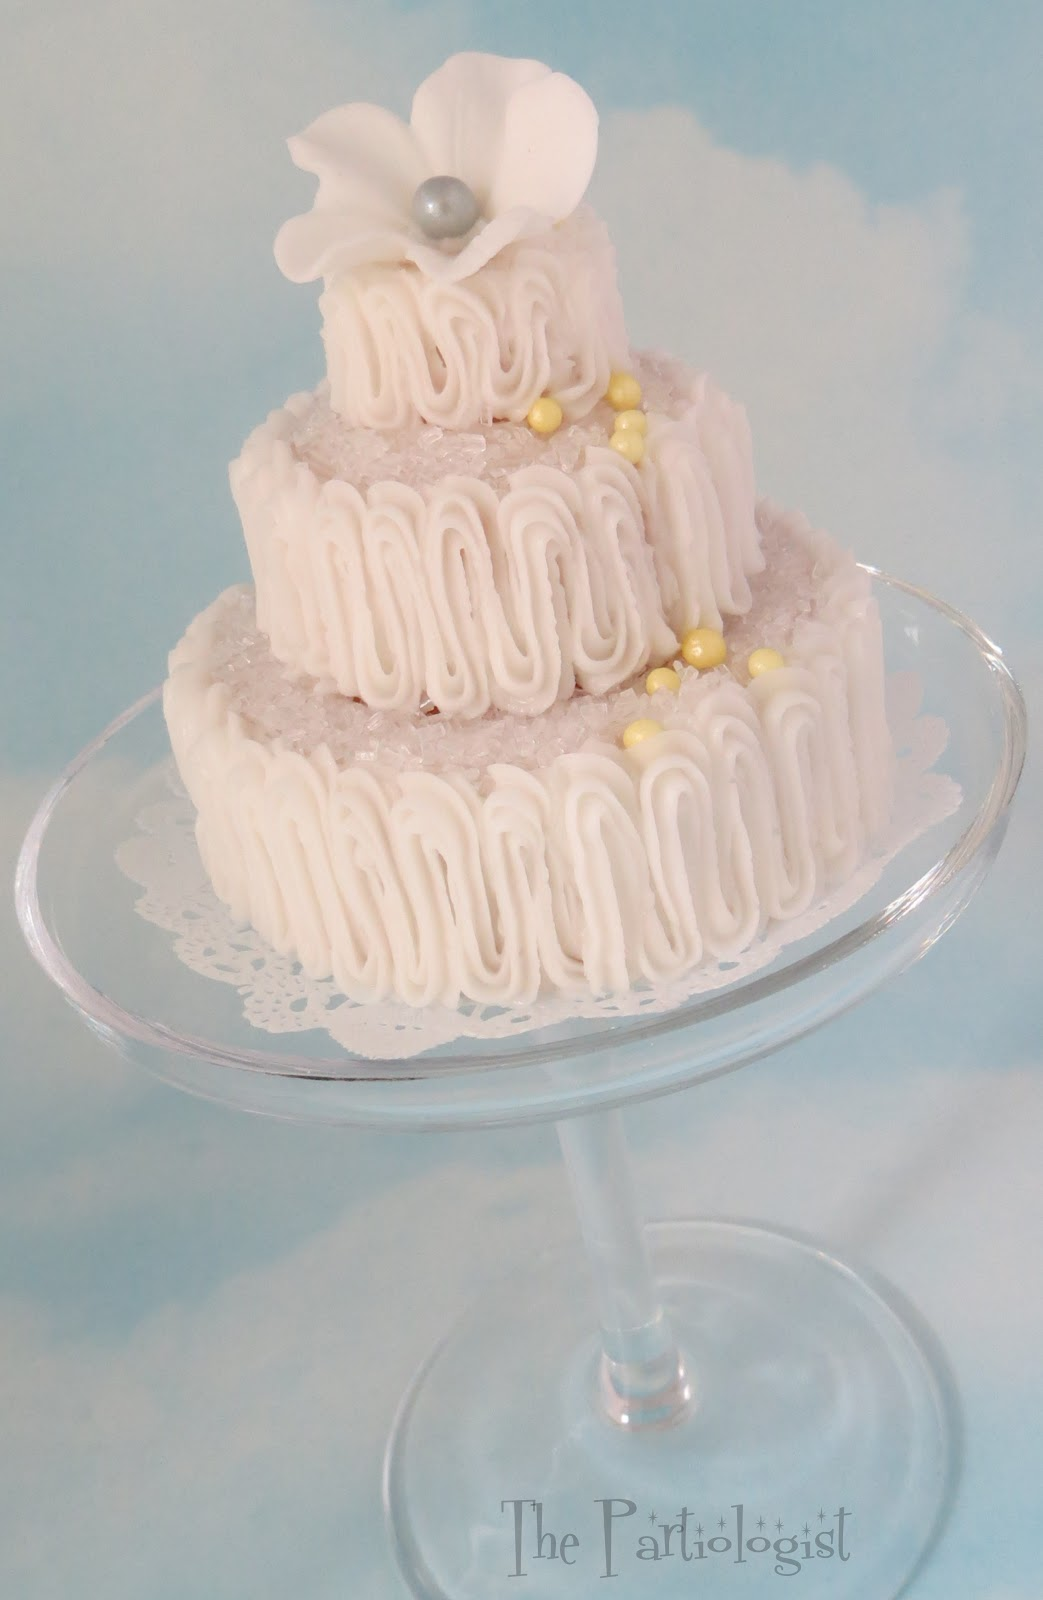 The Partiologist Mini Tiered Wedding Cake Tutorial